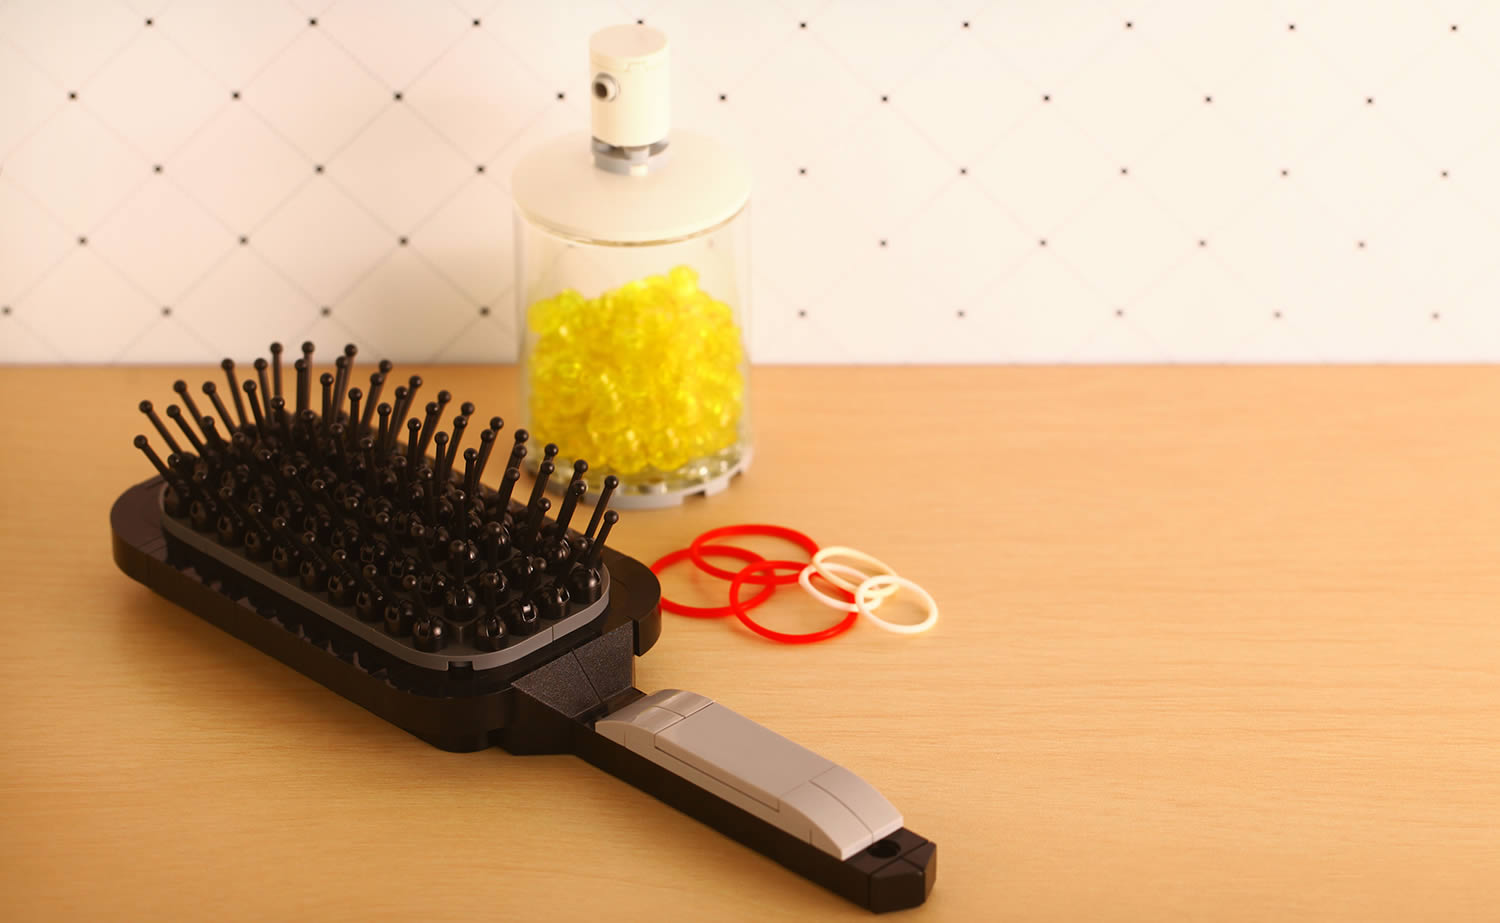 hair brush built in lego pieces